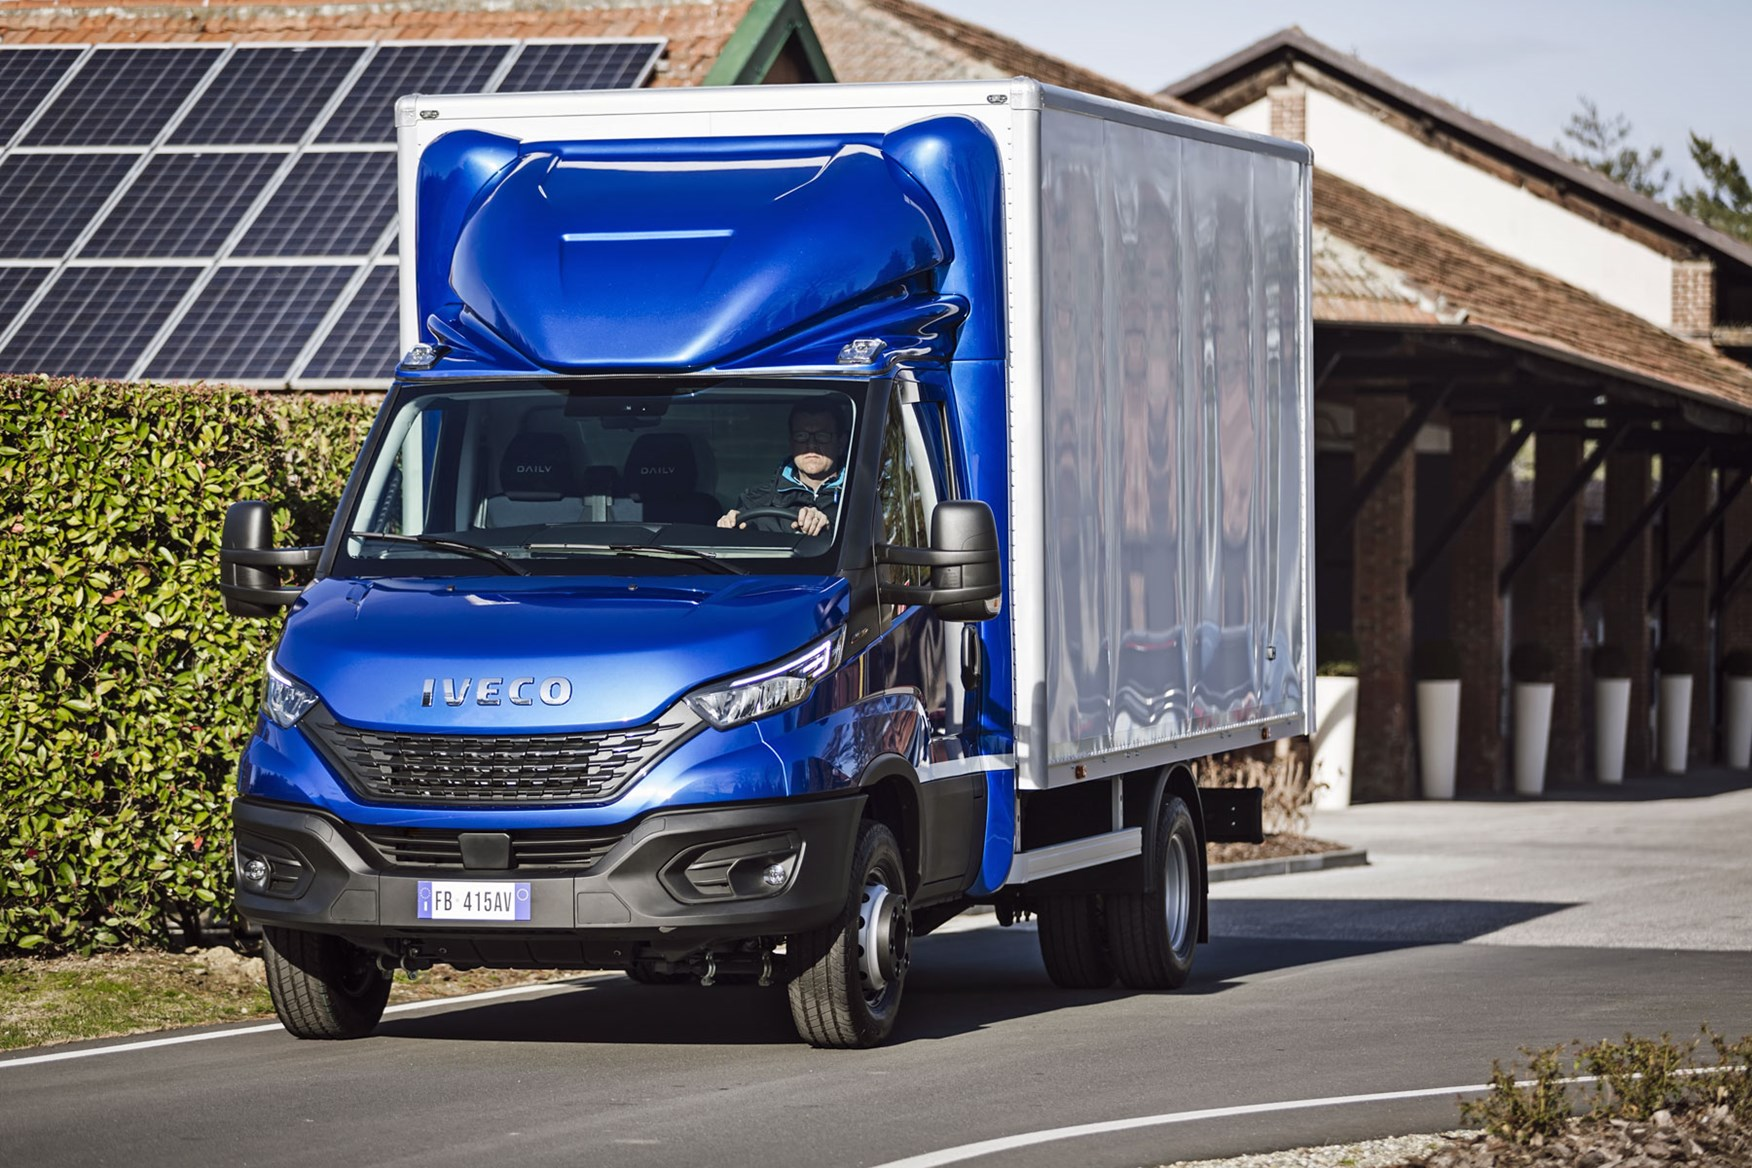 Iveco Daily 2019 - box van, blue and white, driving, front view